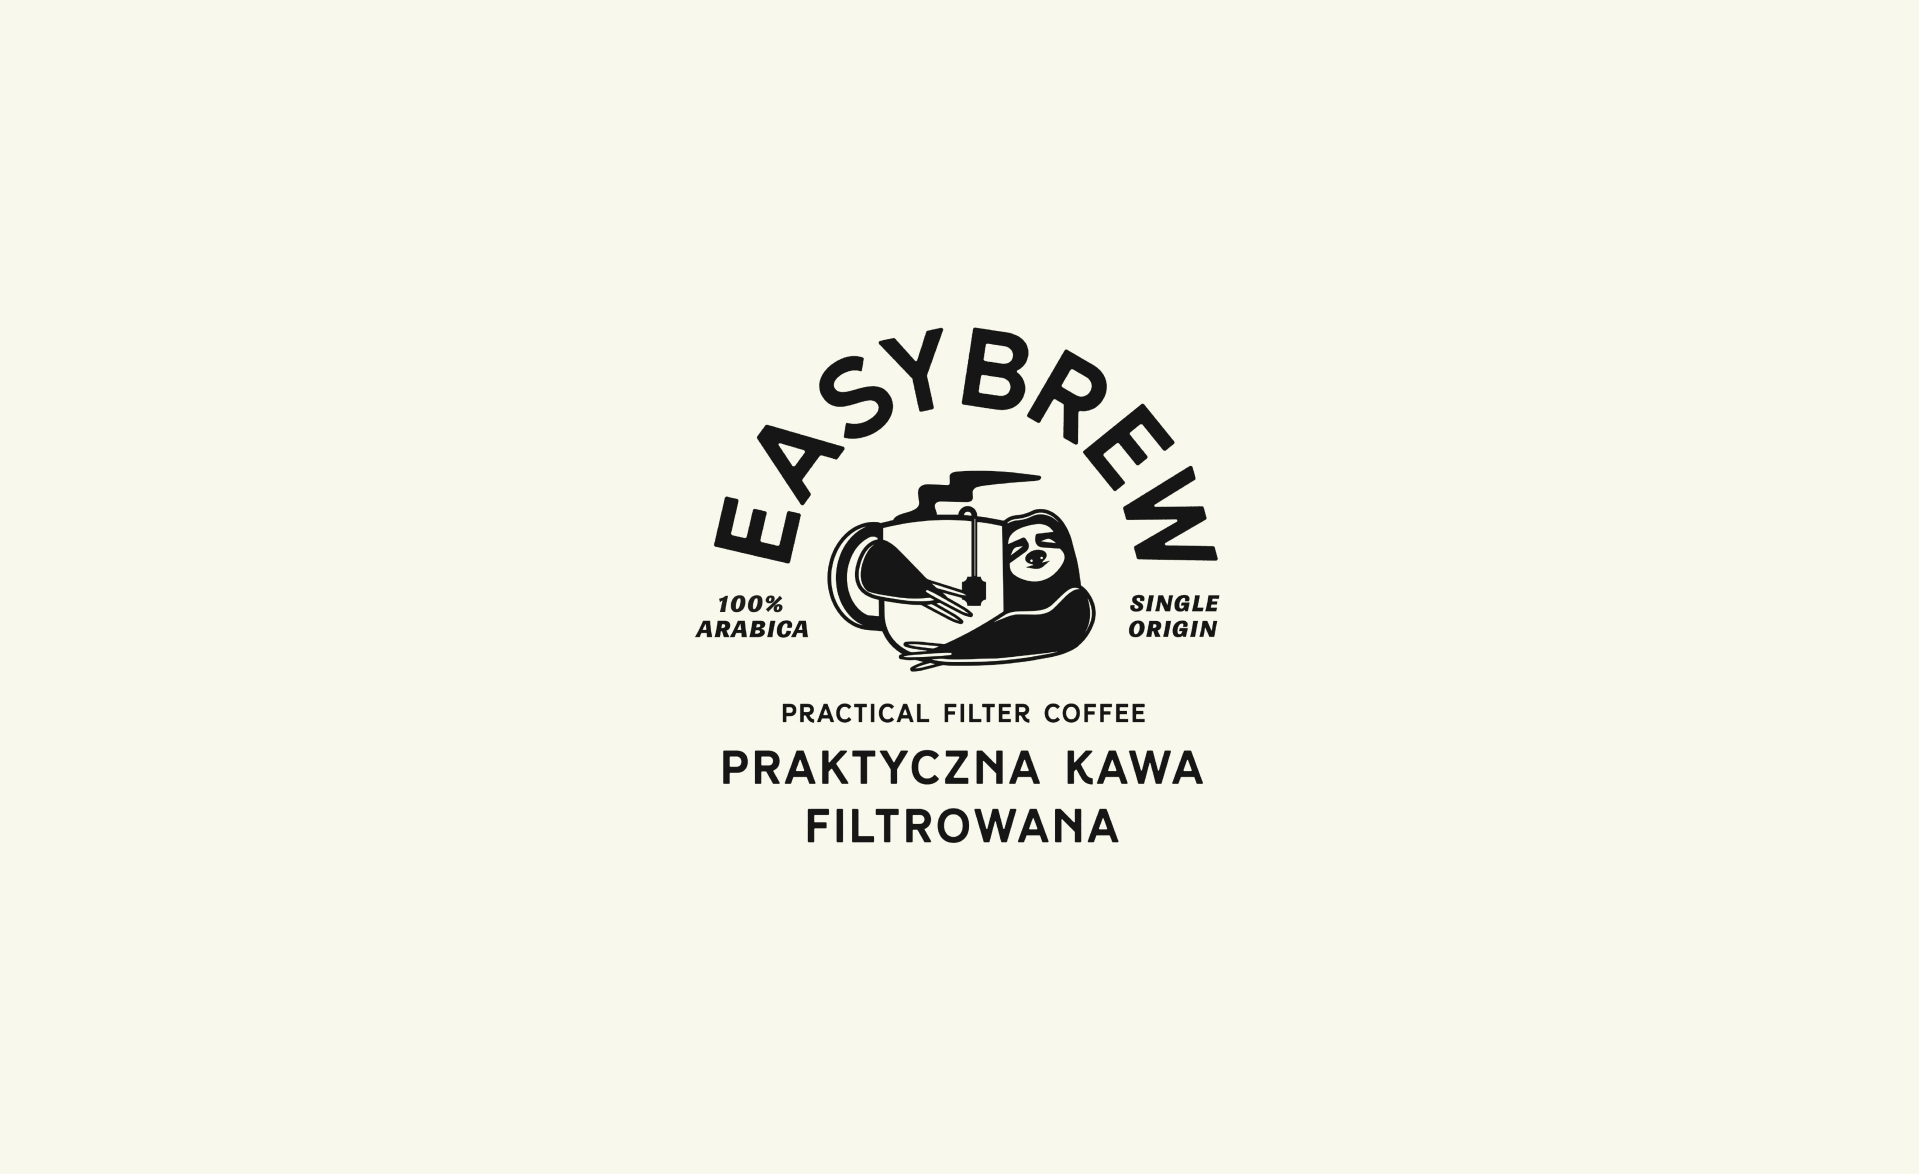 logo-design-easy-brew-coffee-website-easybrew-packaging-zeki-michael-pinterest-coffee-beer-label-branding-strategy-design-practical-studio-freelance